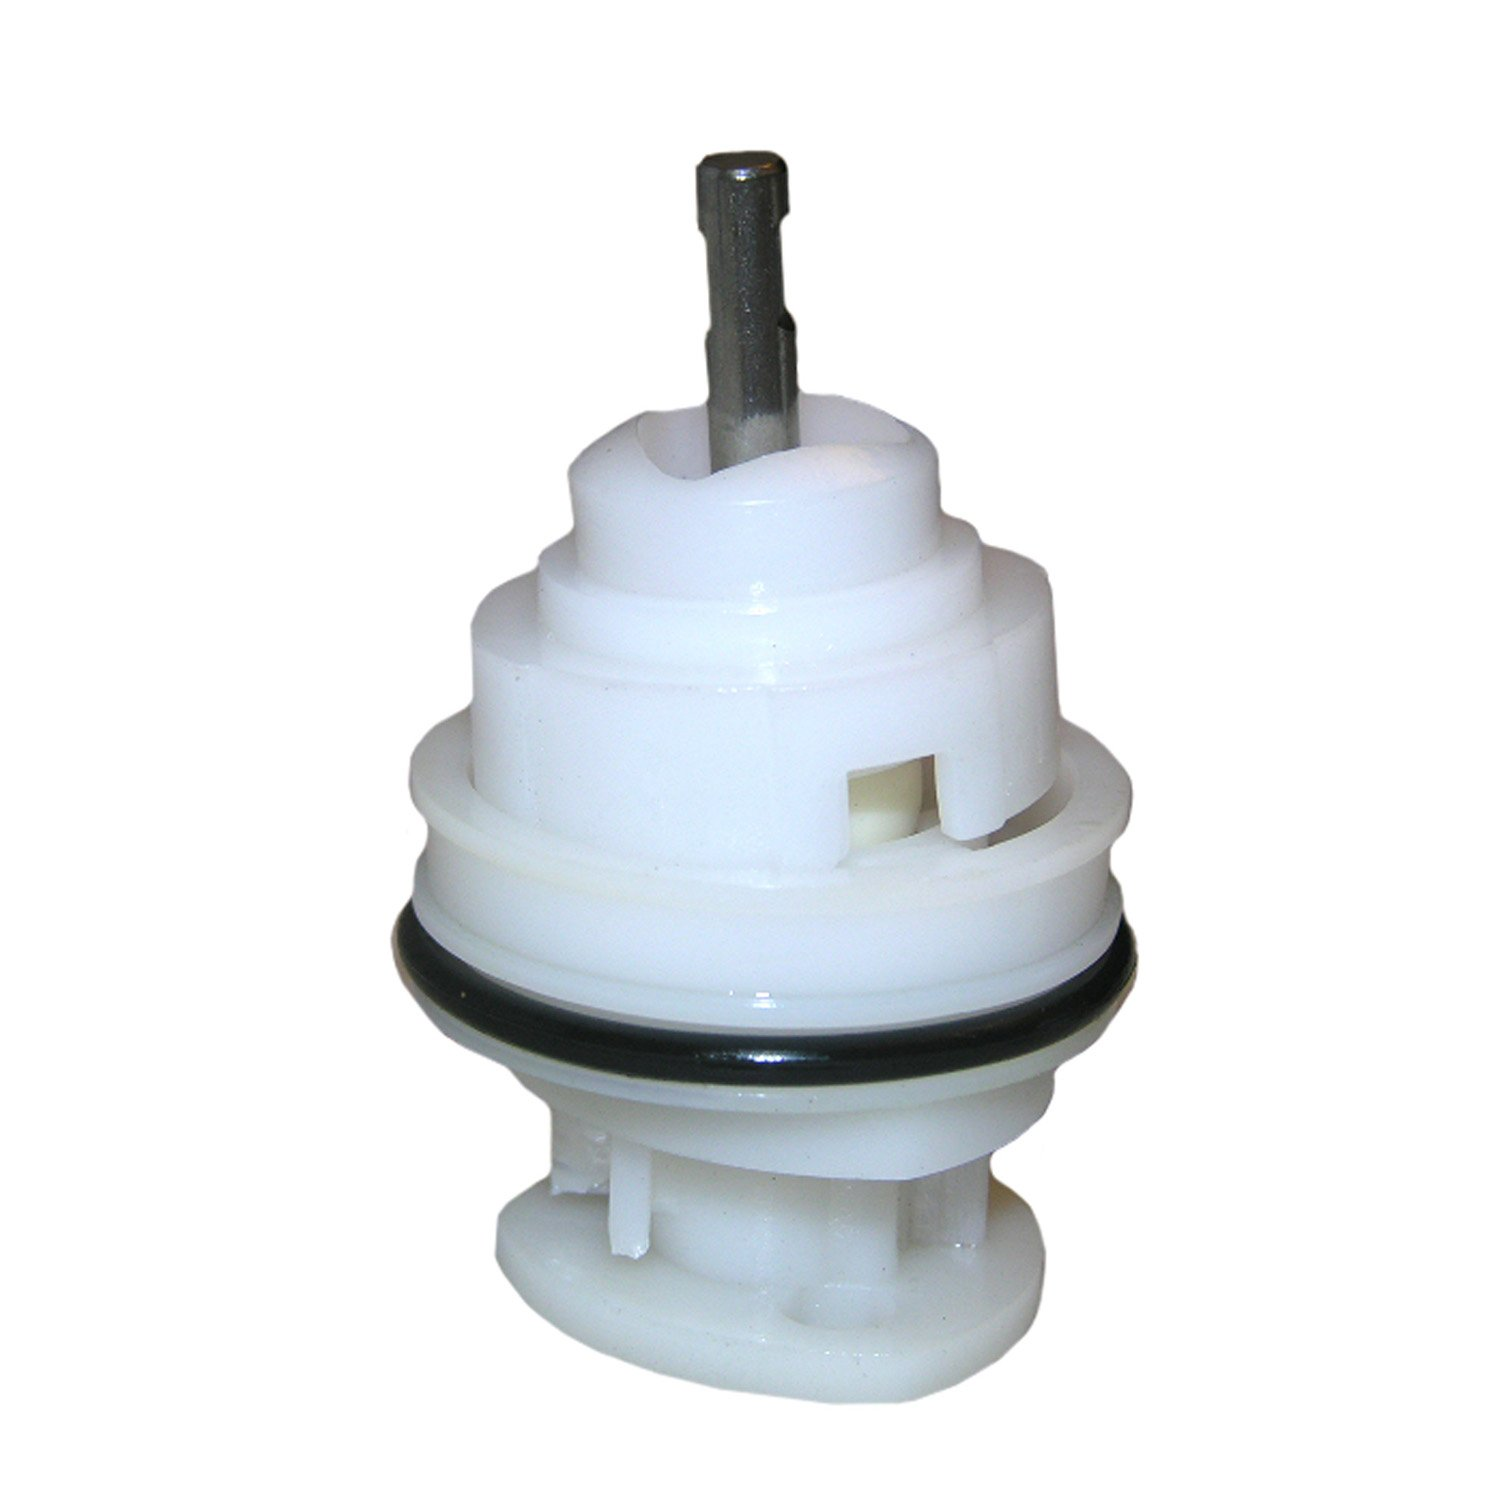 LASCO 0-3081 Single Lever Cartridge for Valley 0370 - Faucet ...